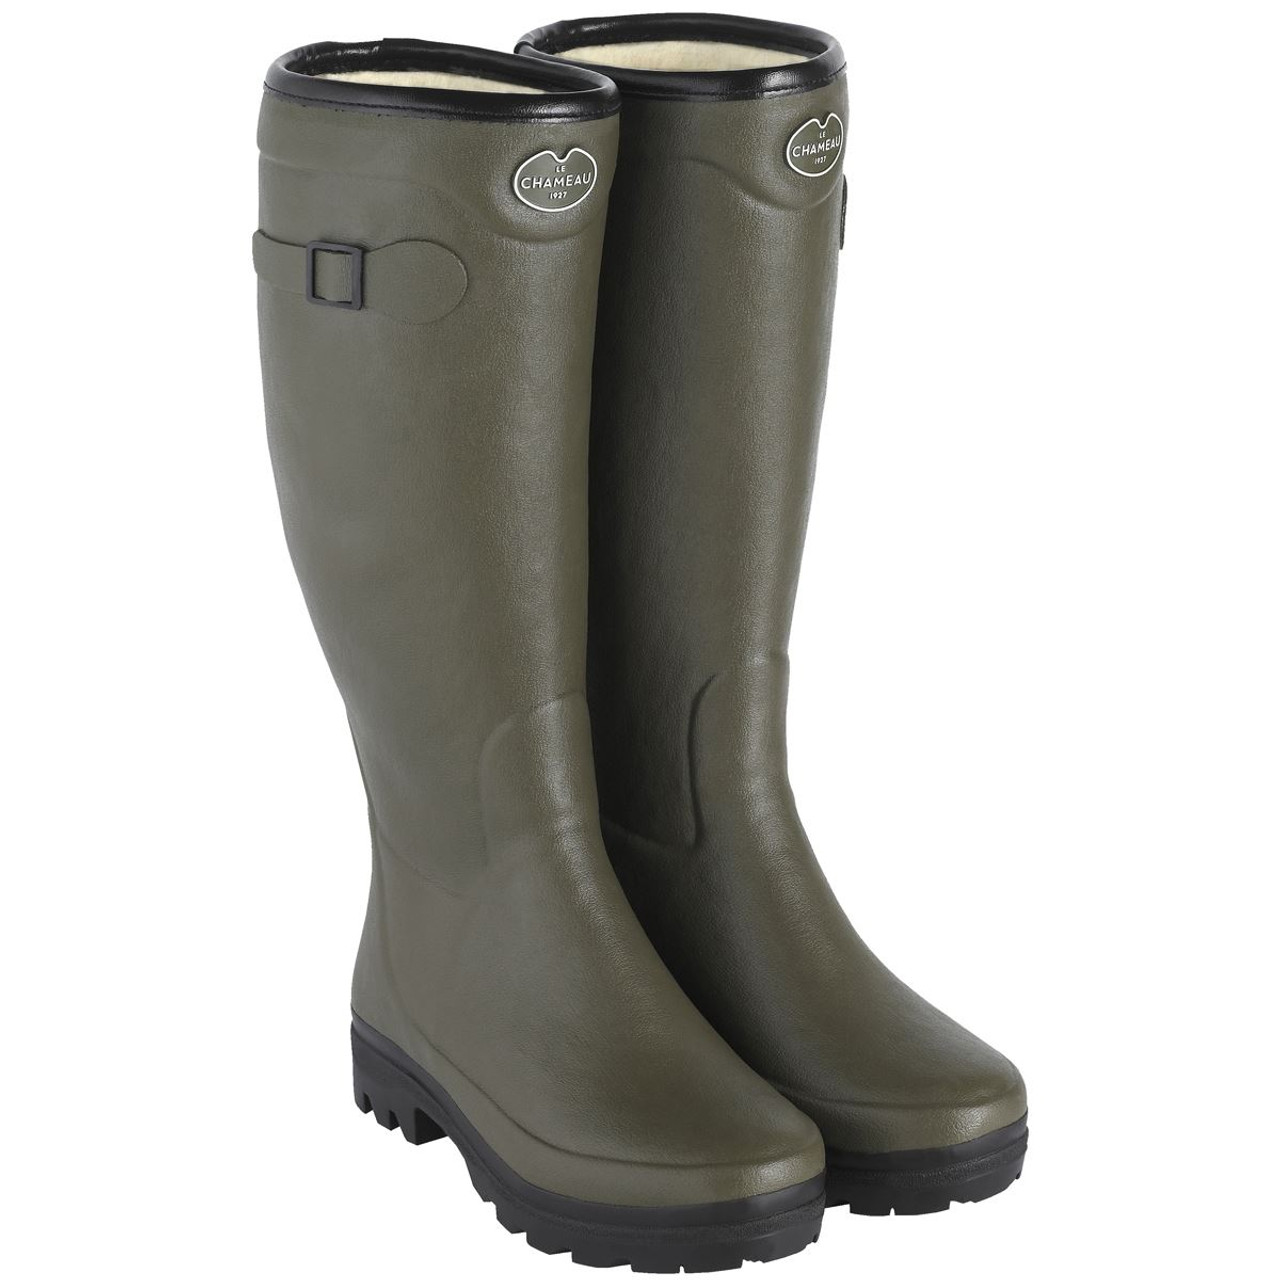 Le Chameau Country Lady Fouree Wellington Boots